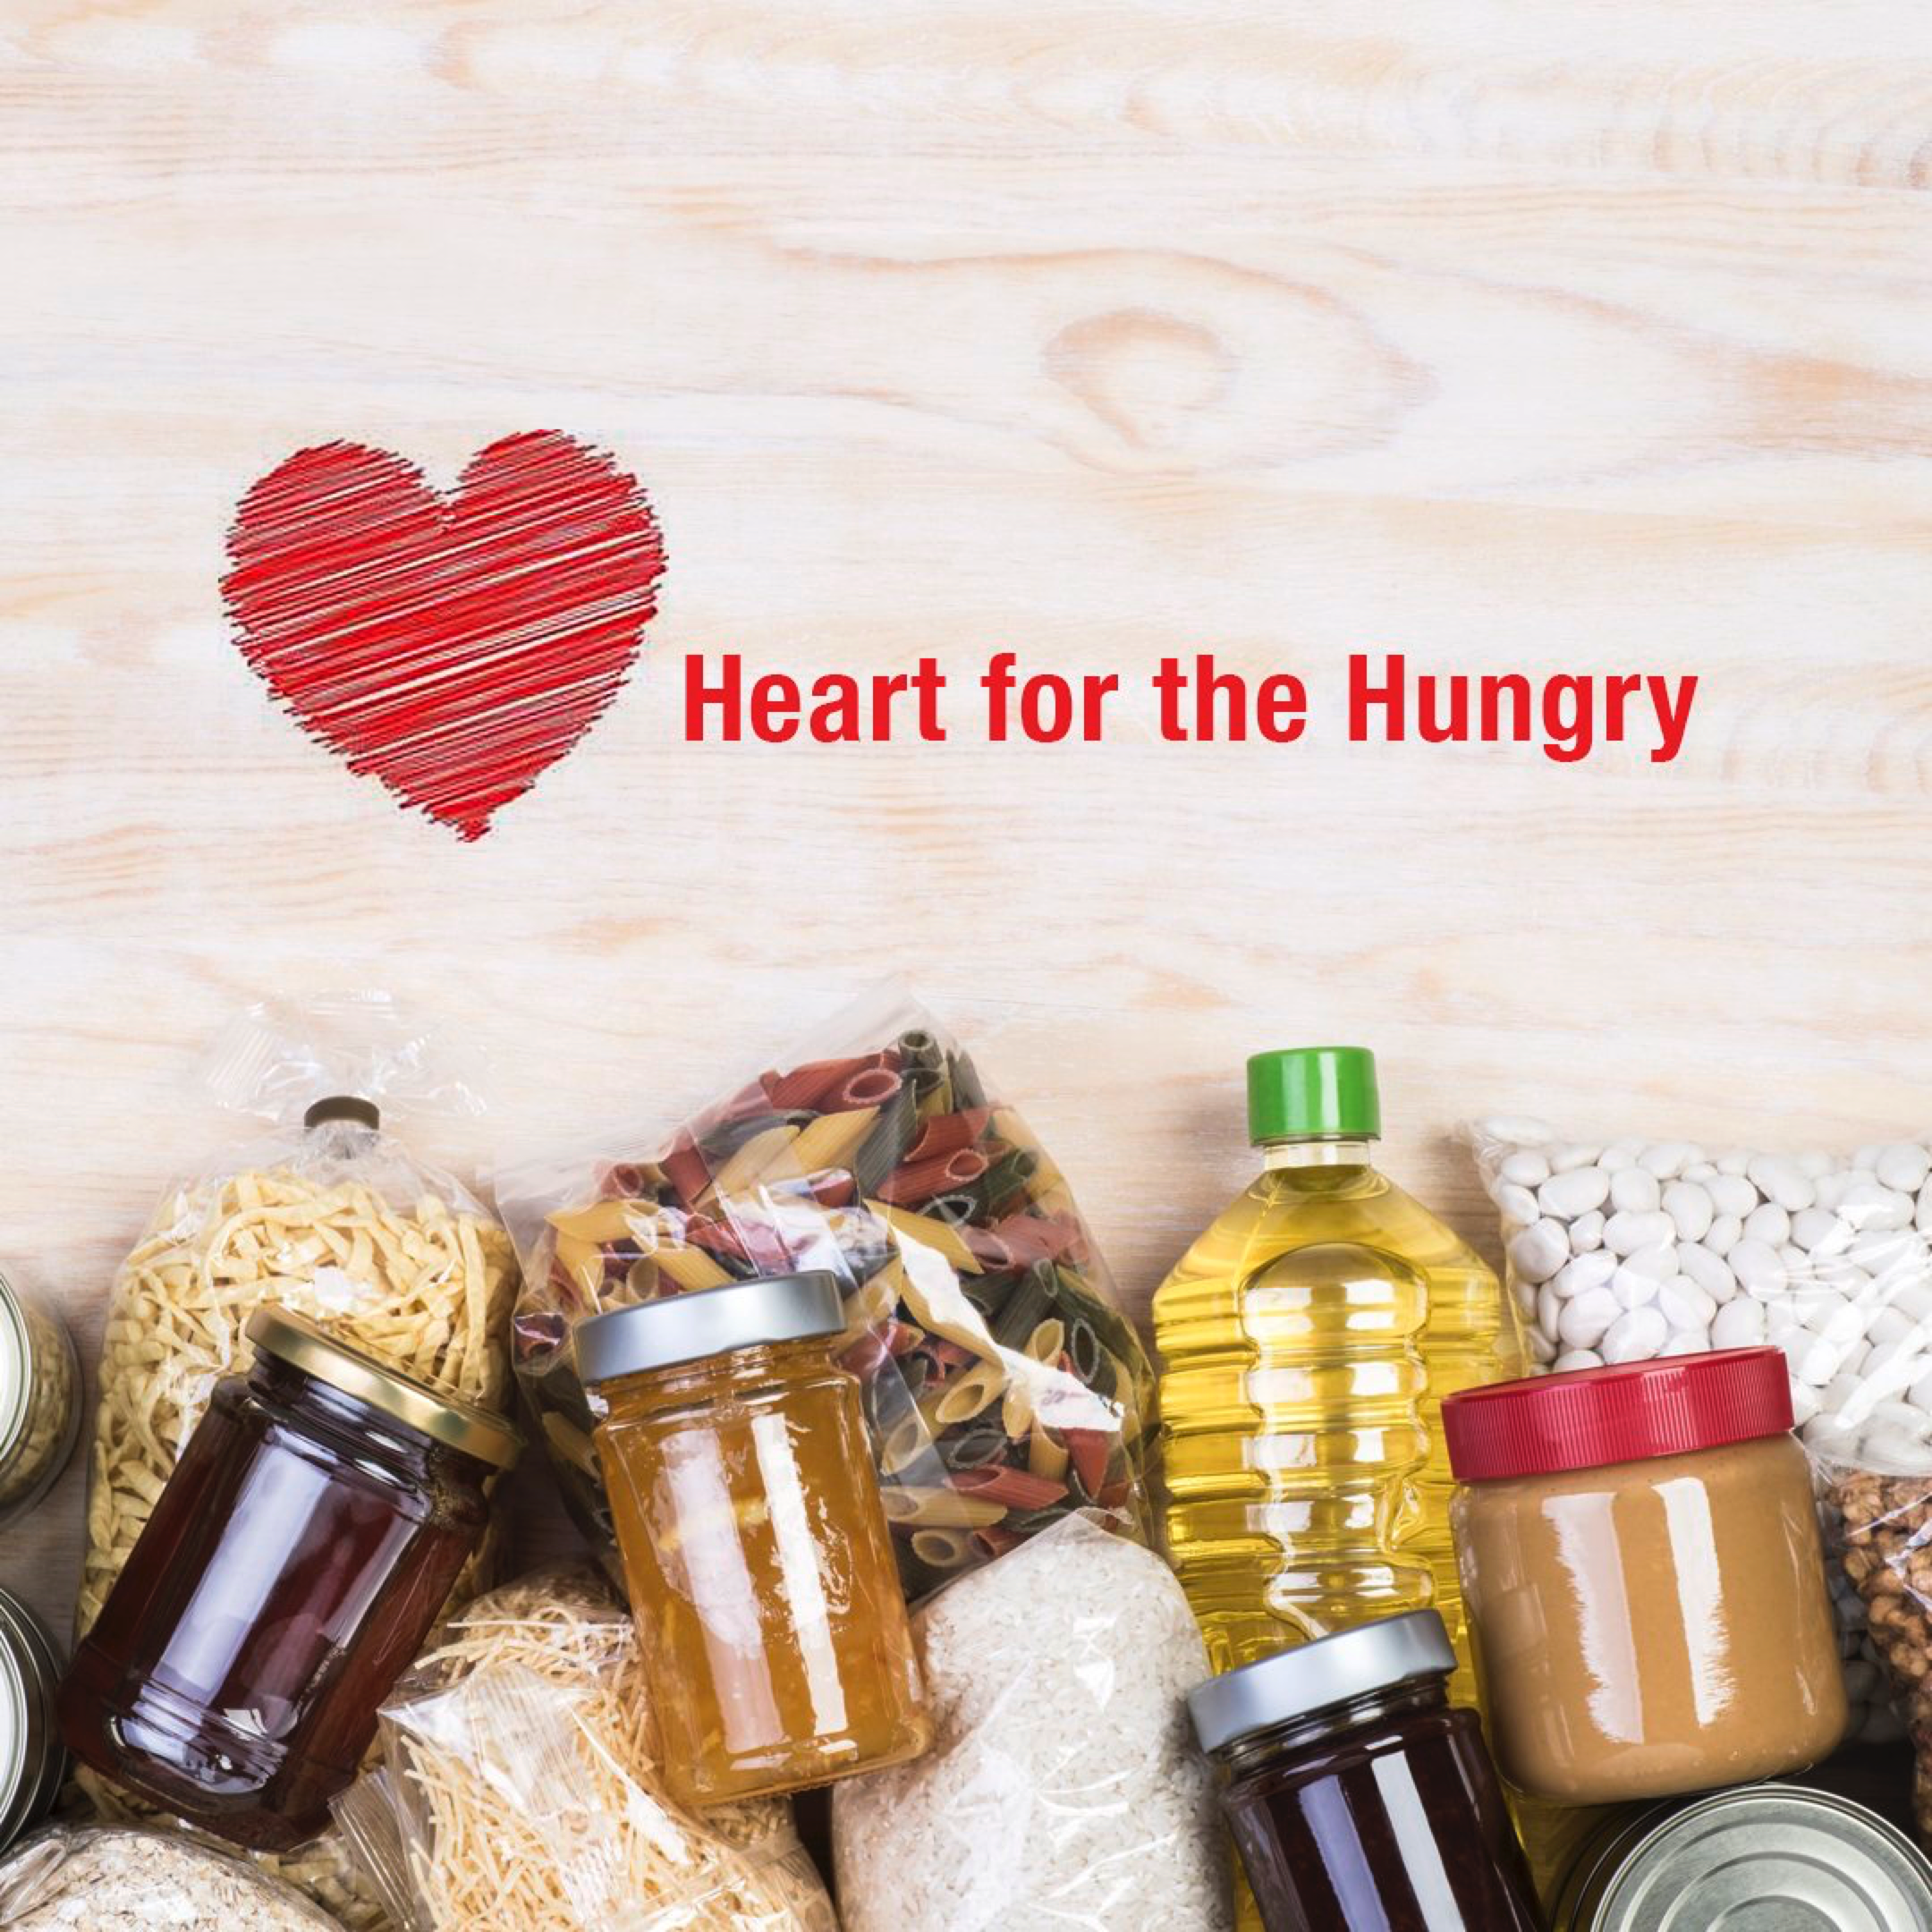 SitOnIt Seating - @SitOnItSeating   Food straight from the heart. For Valentine's Day this week, we took part in the Heart for the Hungry Food Drive by @OC_FoodBank. ❤️ #givingback #ocfoodbank